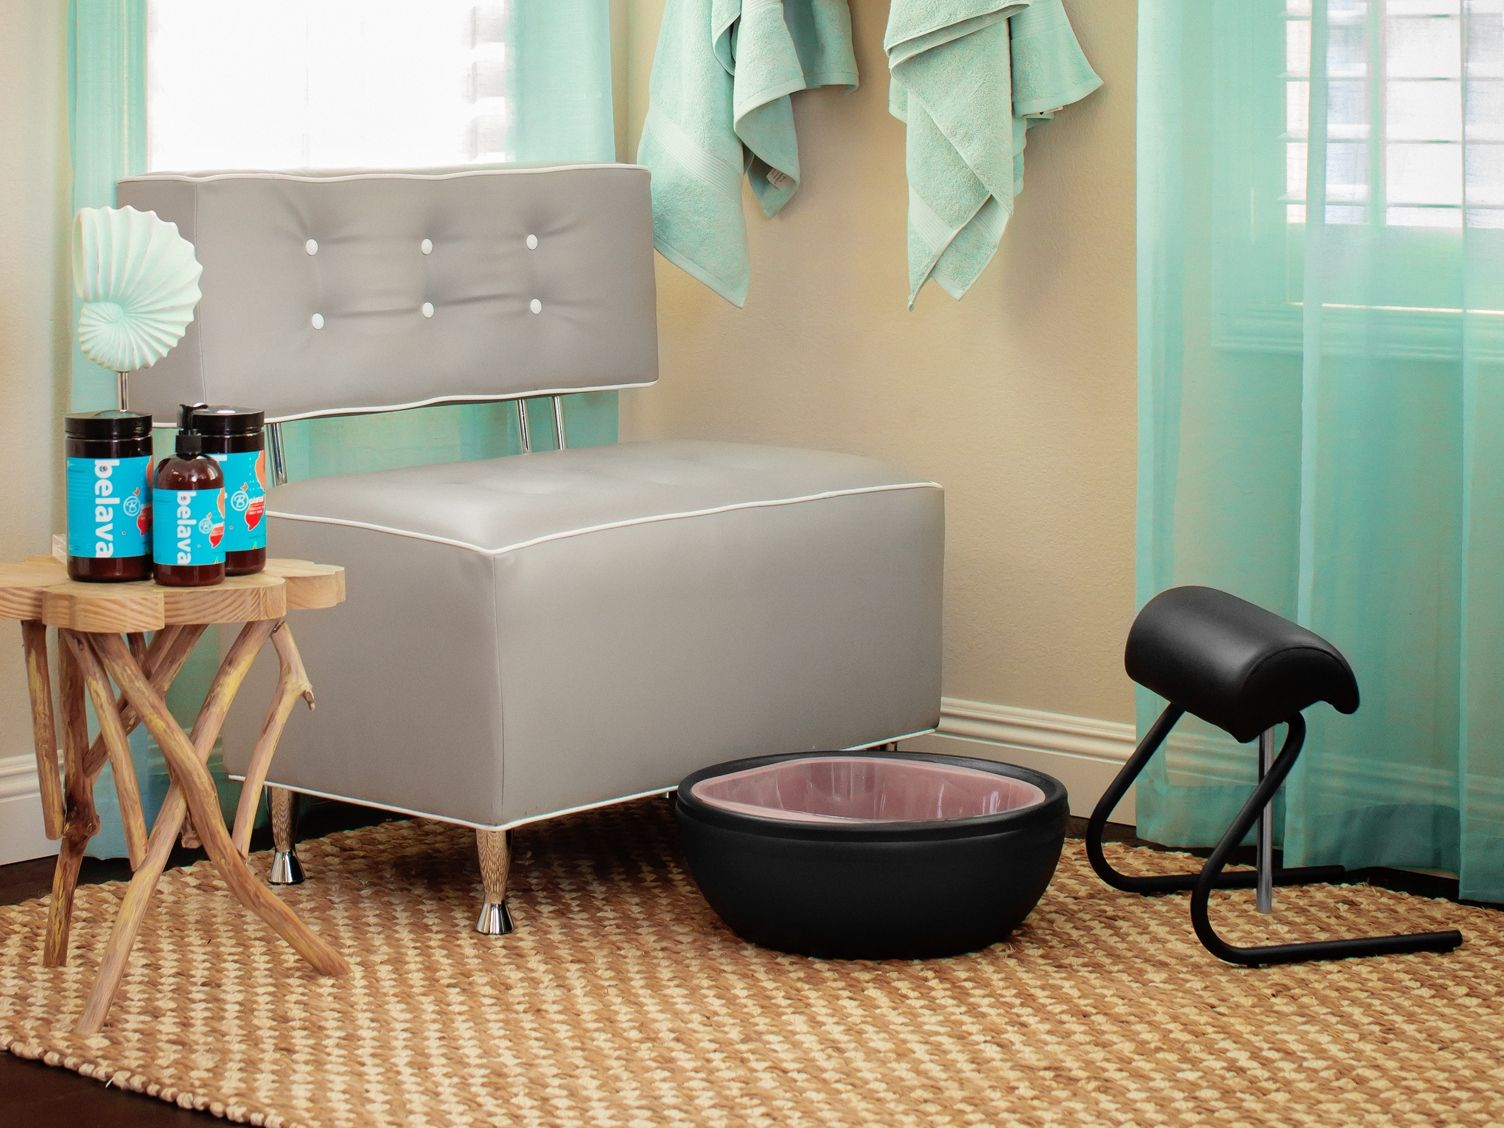 The Trio Foot Spa Freestanding Footrest Turn Our Lounge Chair Into Another No Plumbing Pedicure Stati Pedicure Station Salon Furniture Beauty Salon Furniture